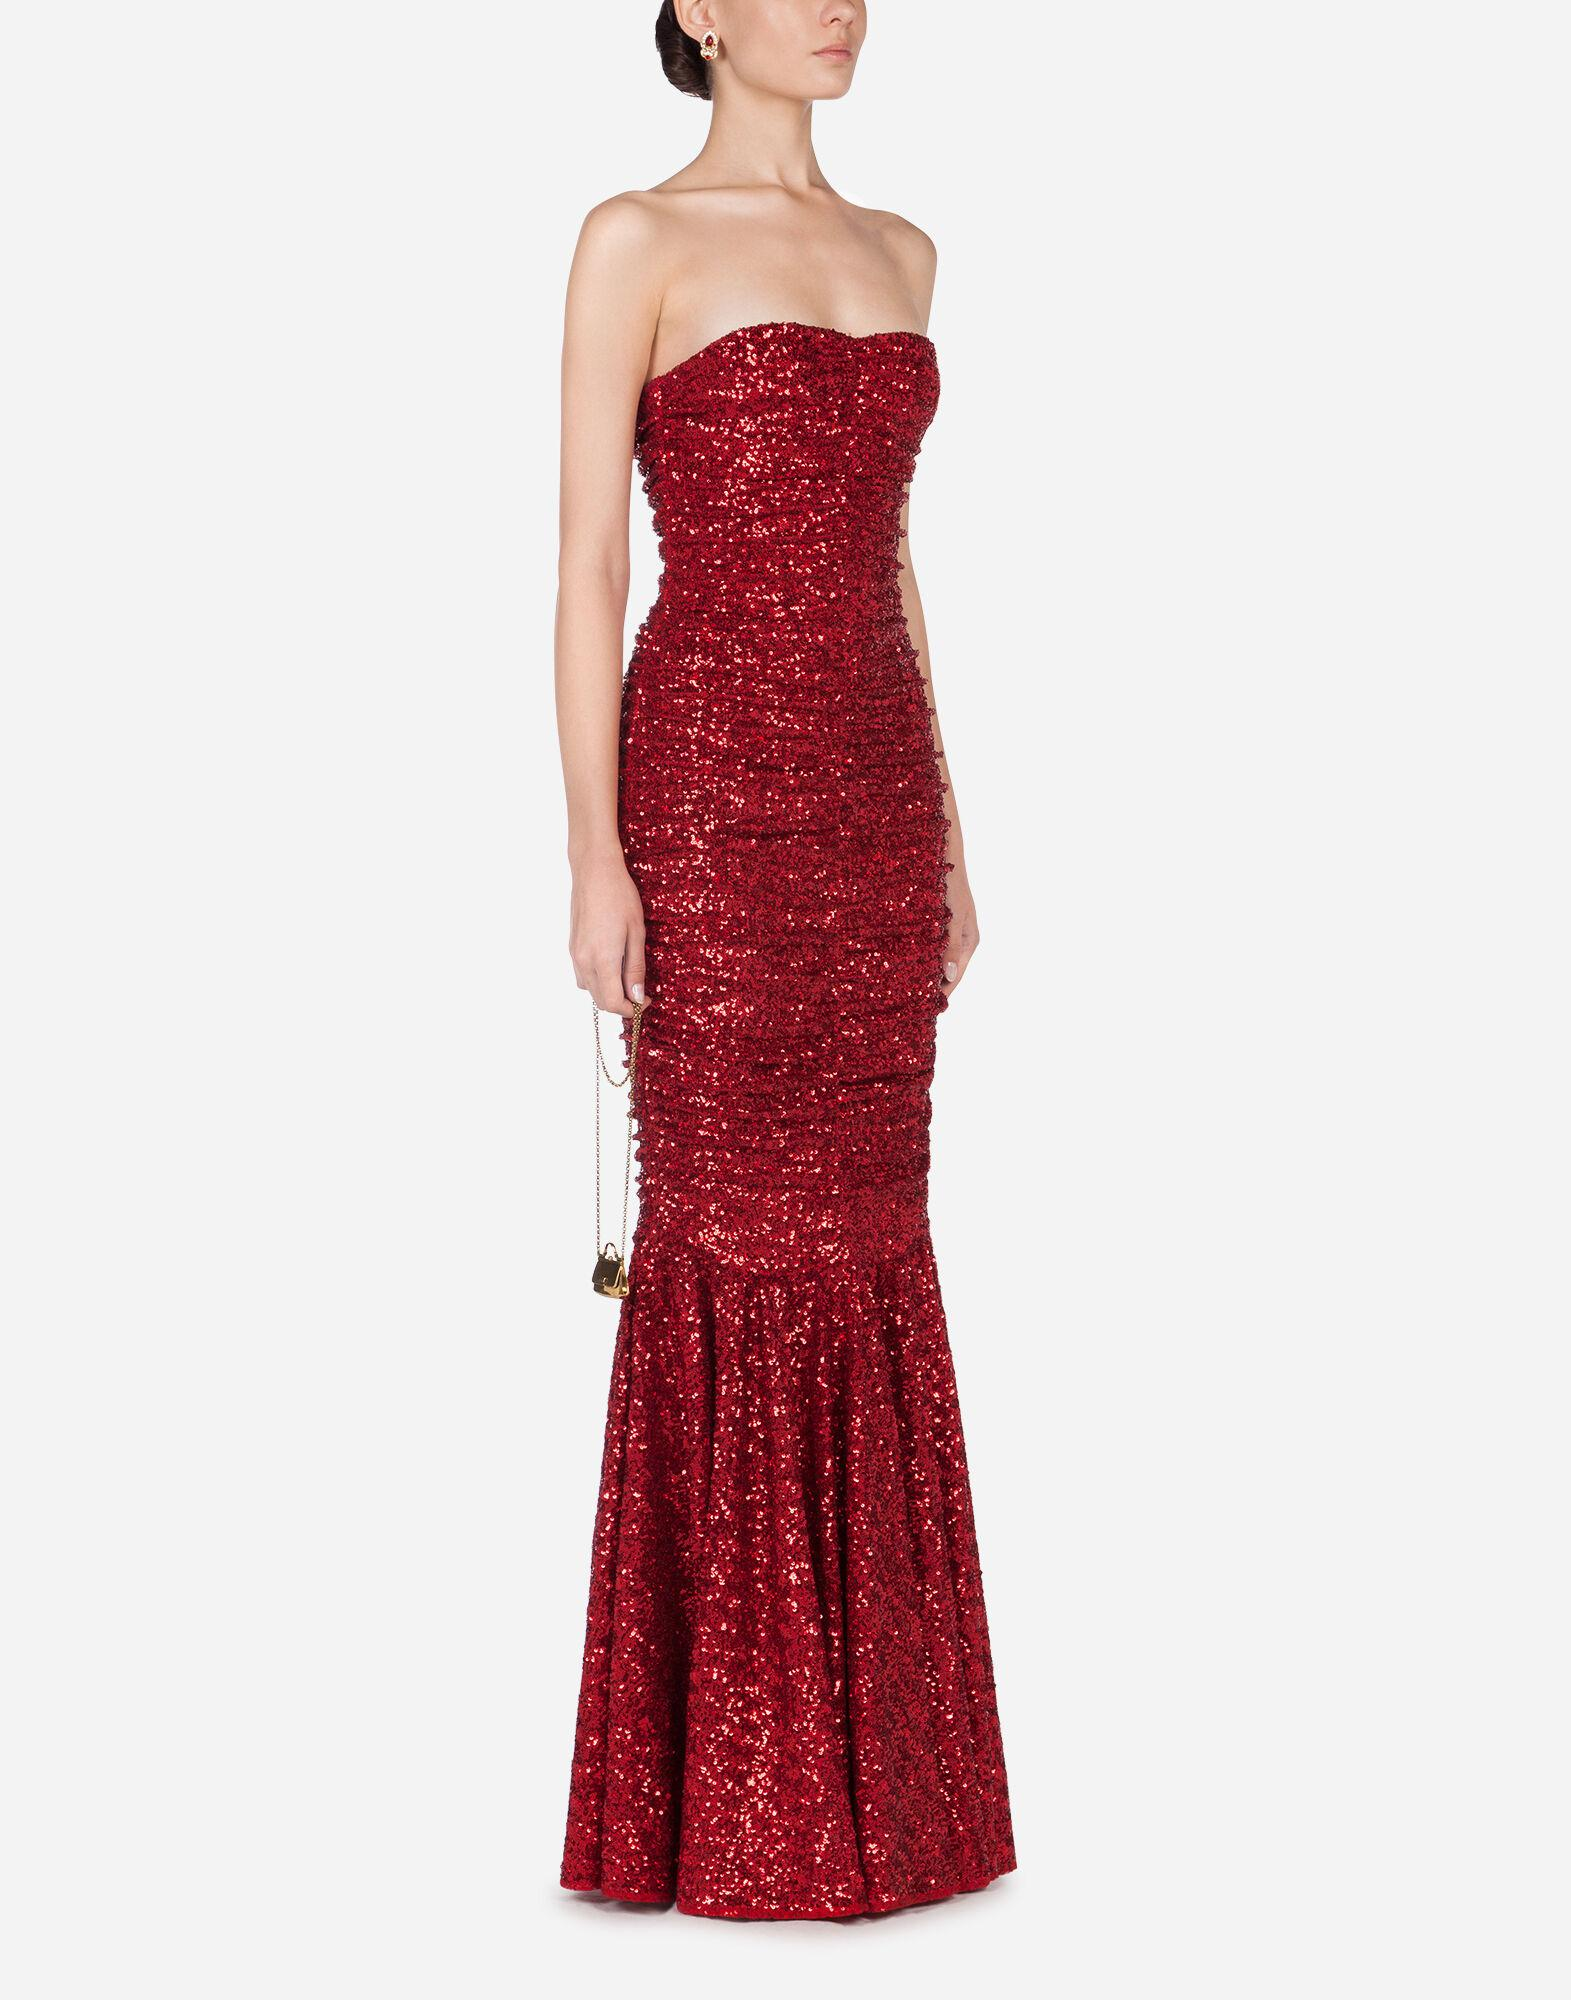 Long dress draped in sequins